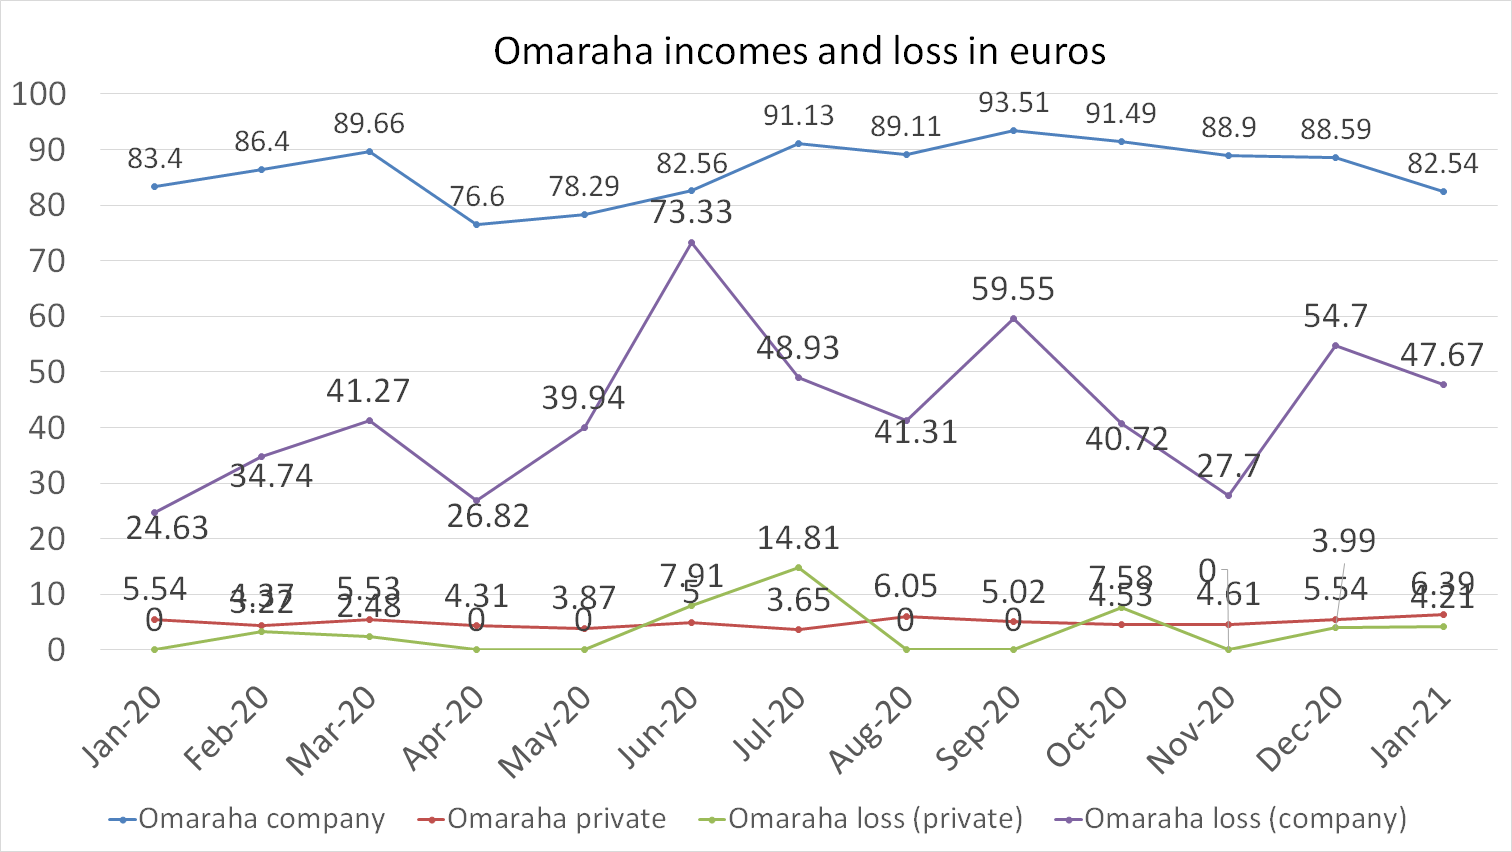 Omaraha incomes and loss in euros january 2021